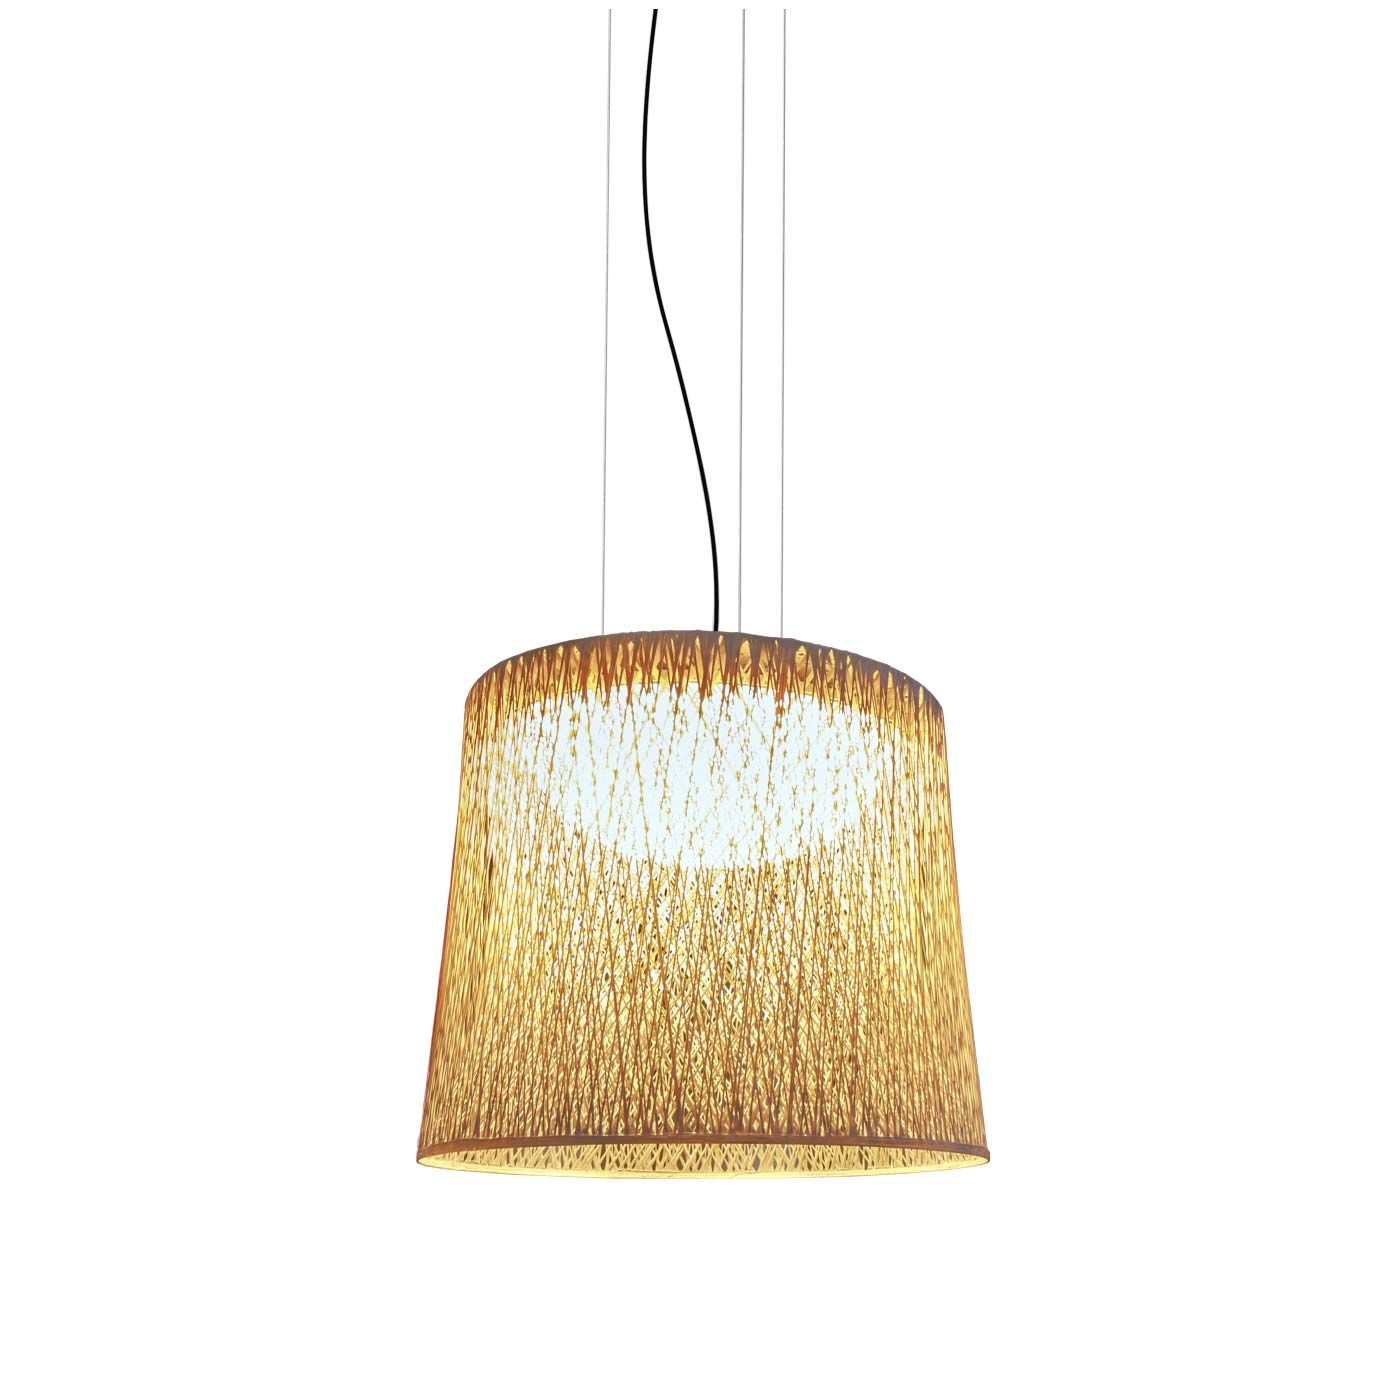 Vibia/Wind 4077ペンダントライト